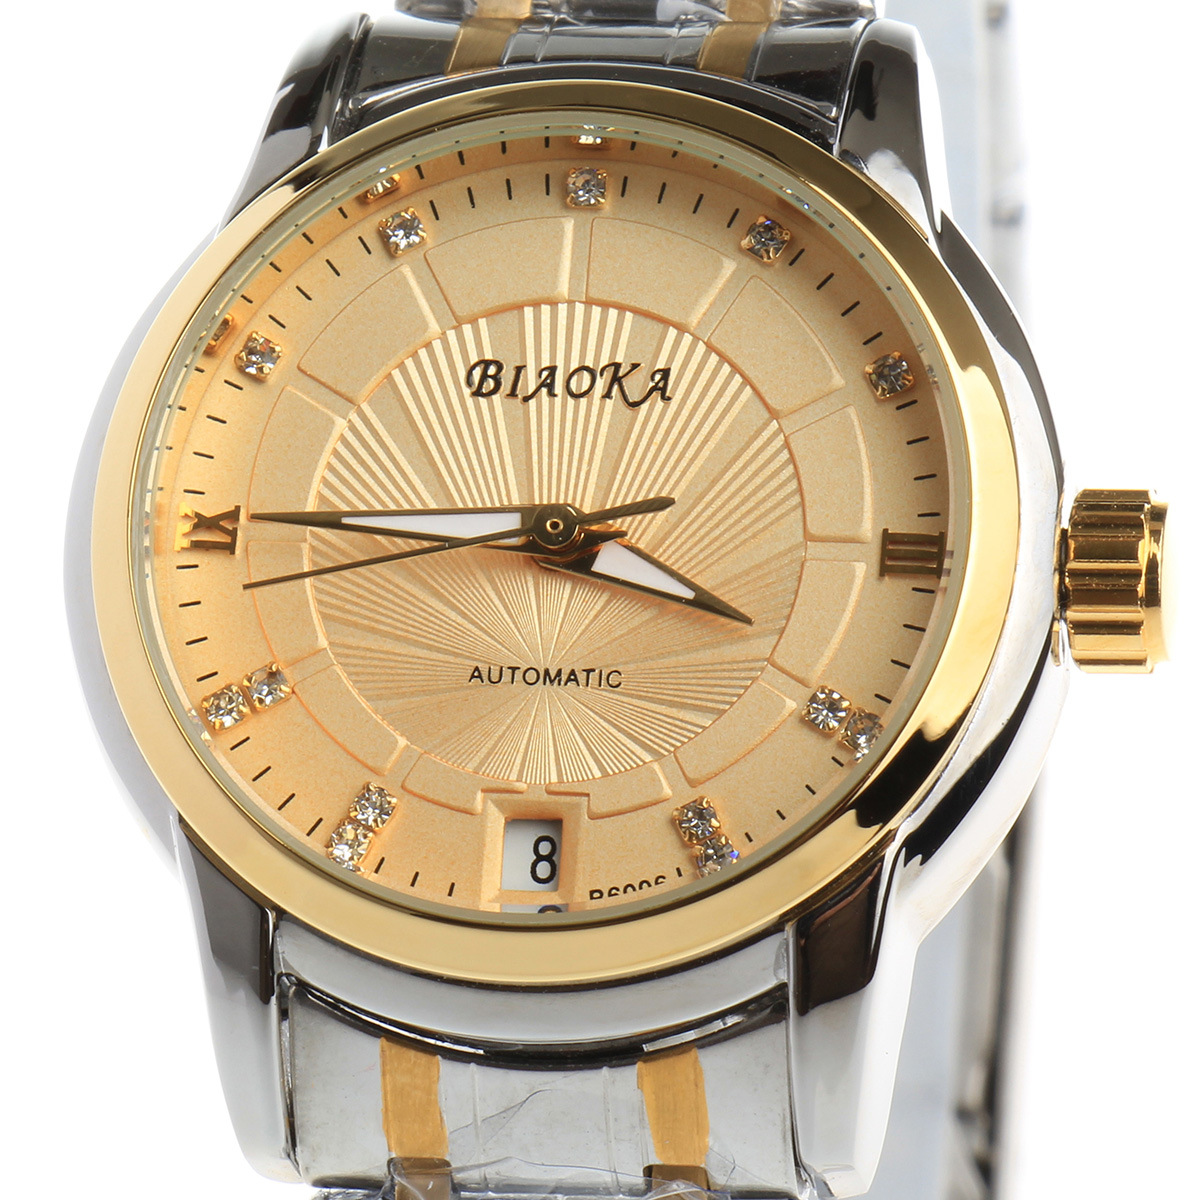 BIAOKA Brand New Fashion Gold Watch Stilig Stål Kvinnor Klocka - Damklockor - Foto 4